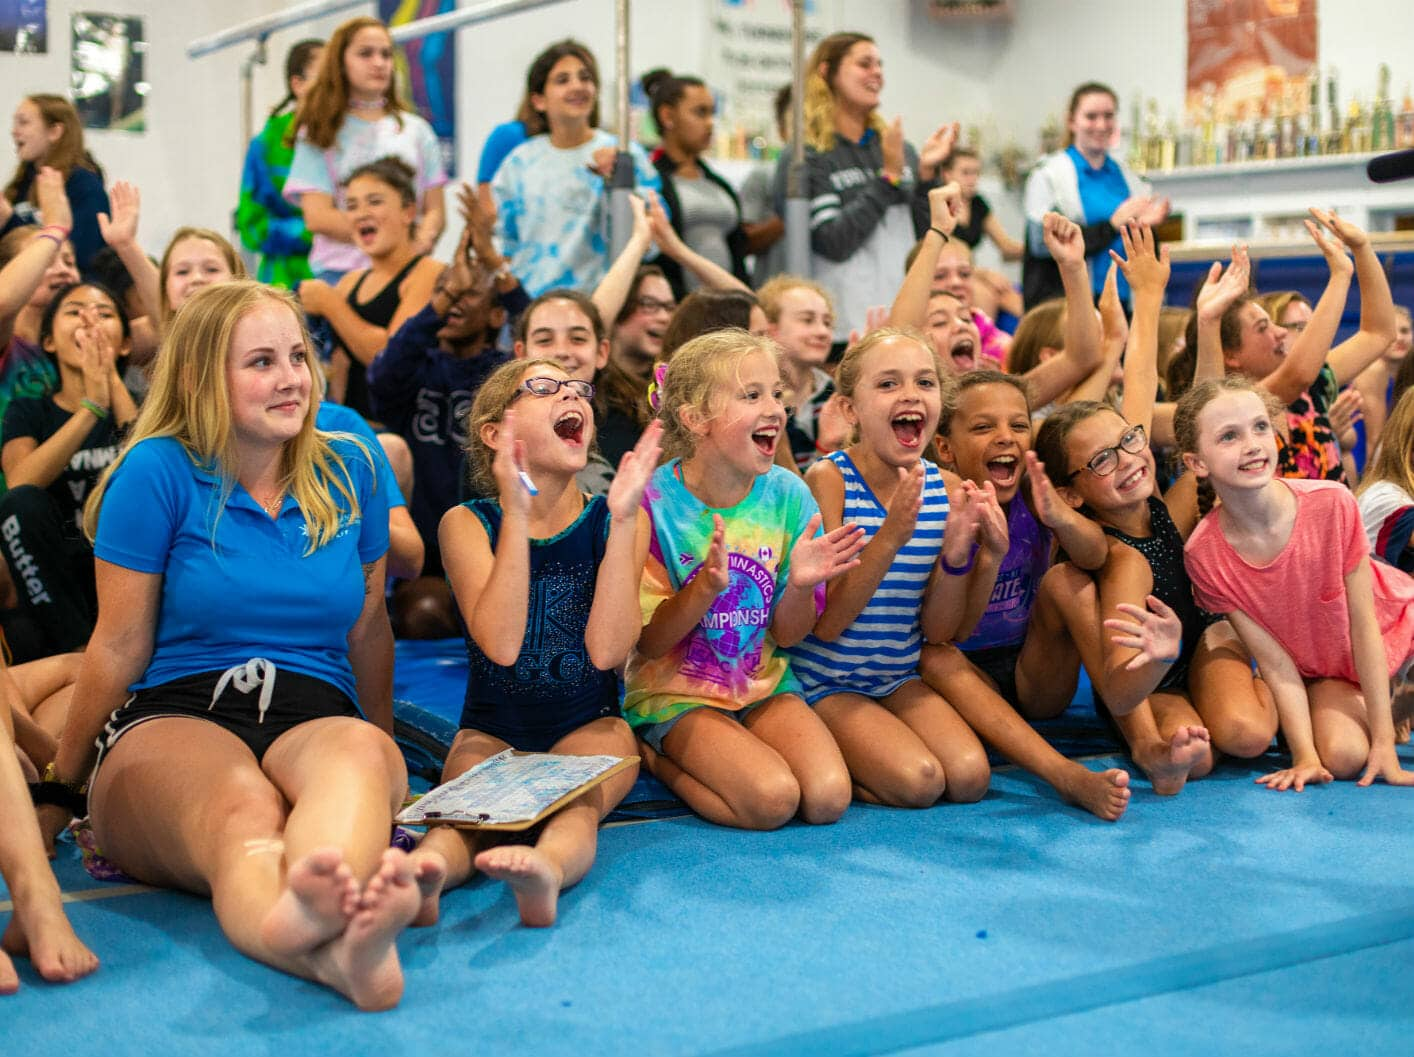 typical-day-at-gymnastics-camp